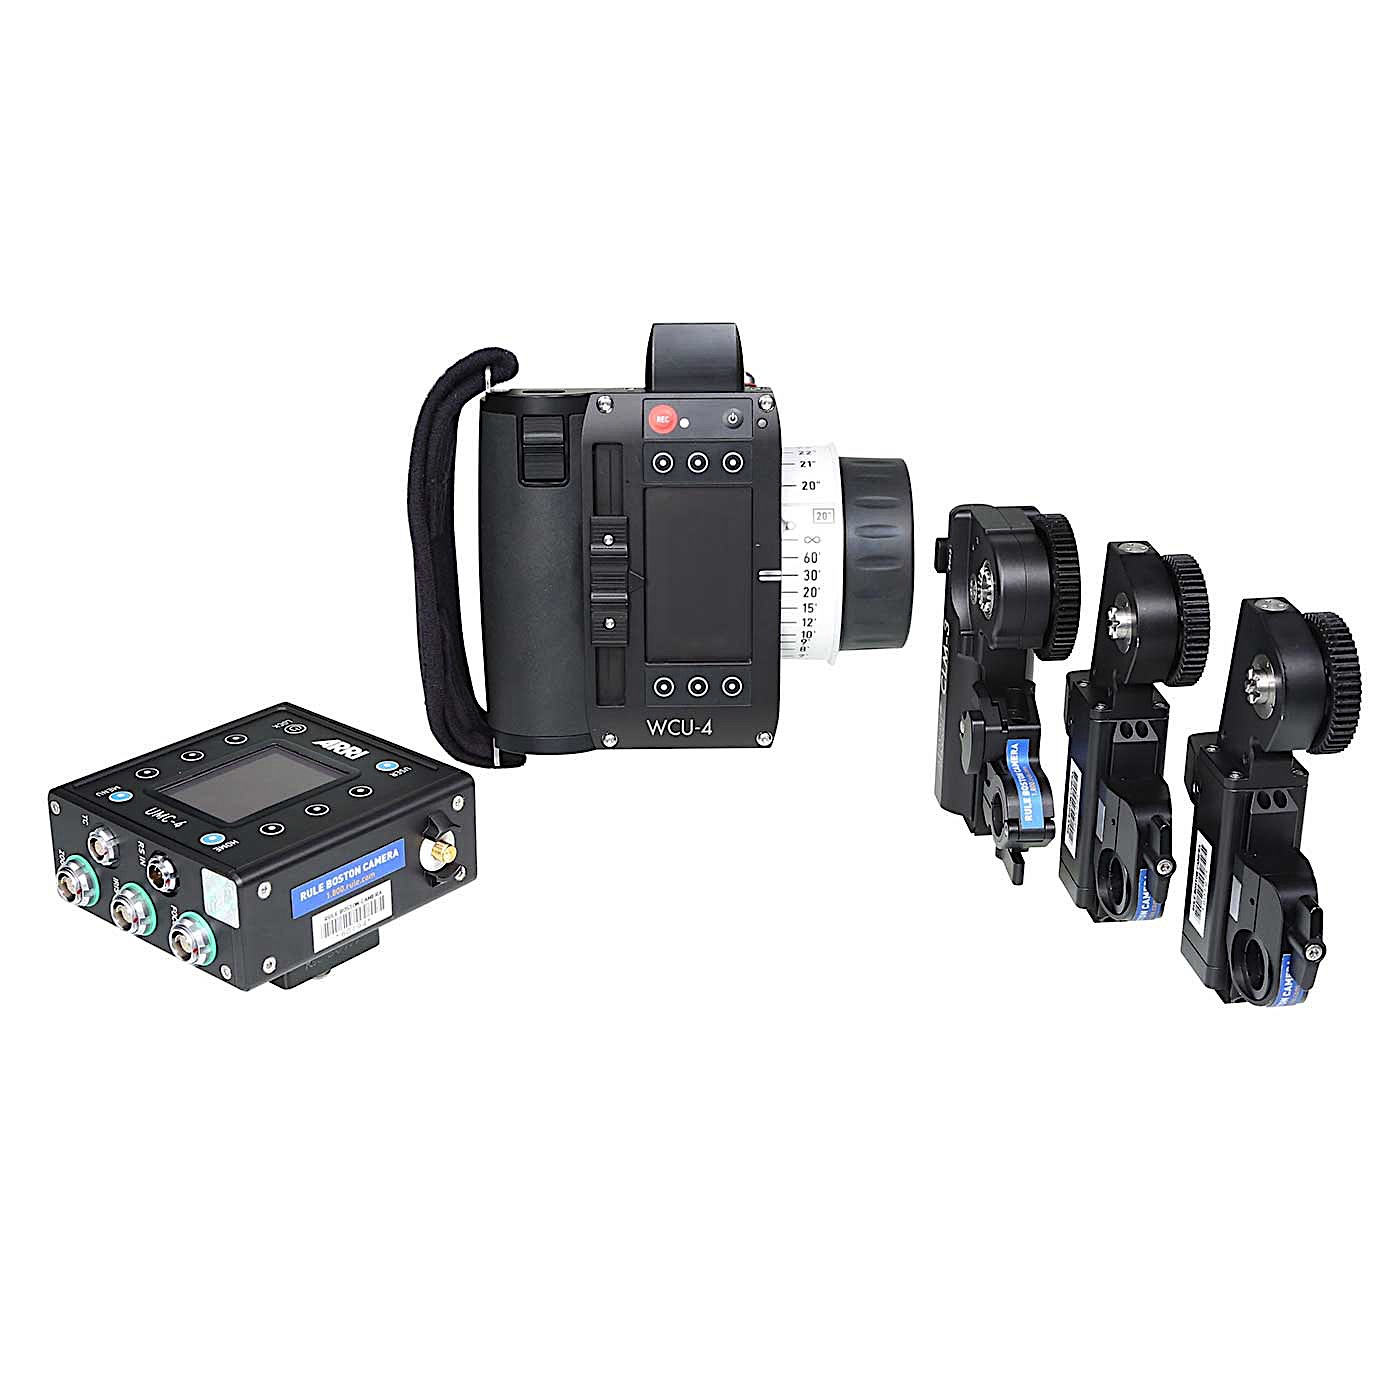 ARRI WCU-4 Wireless Compact Unit